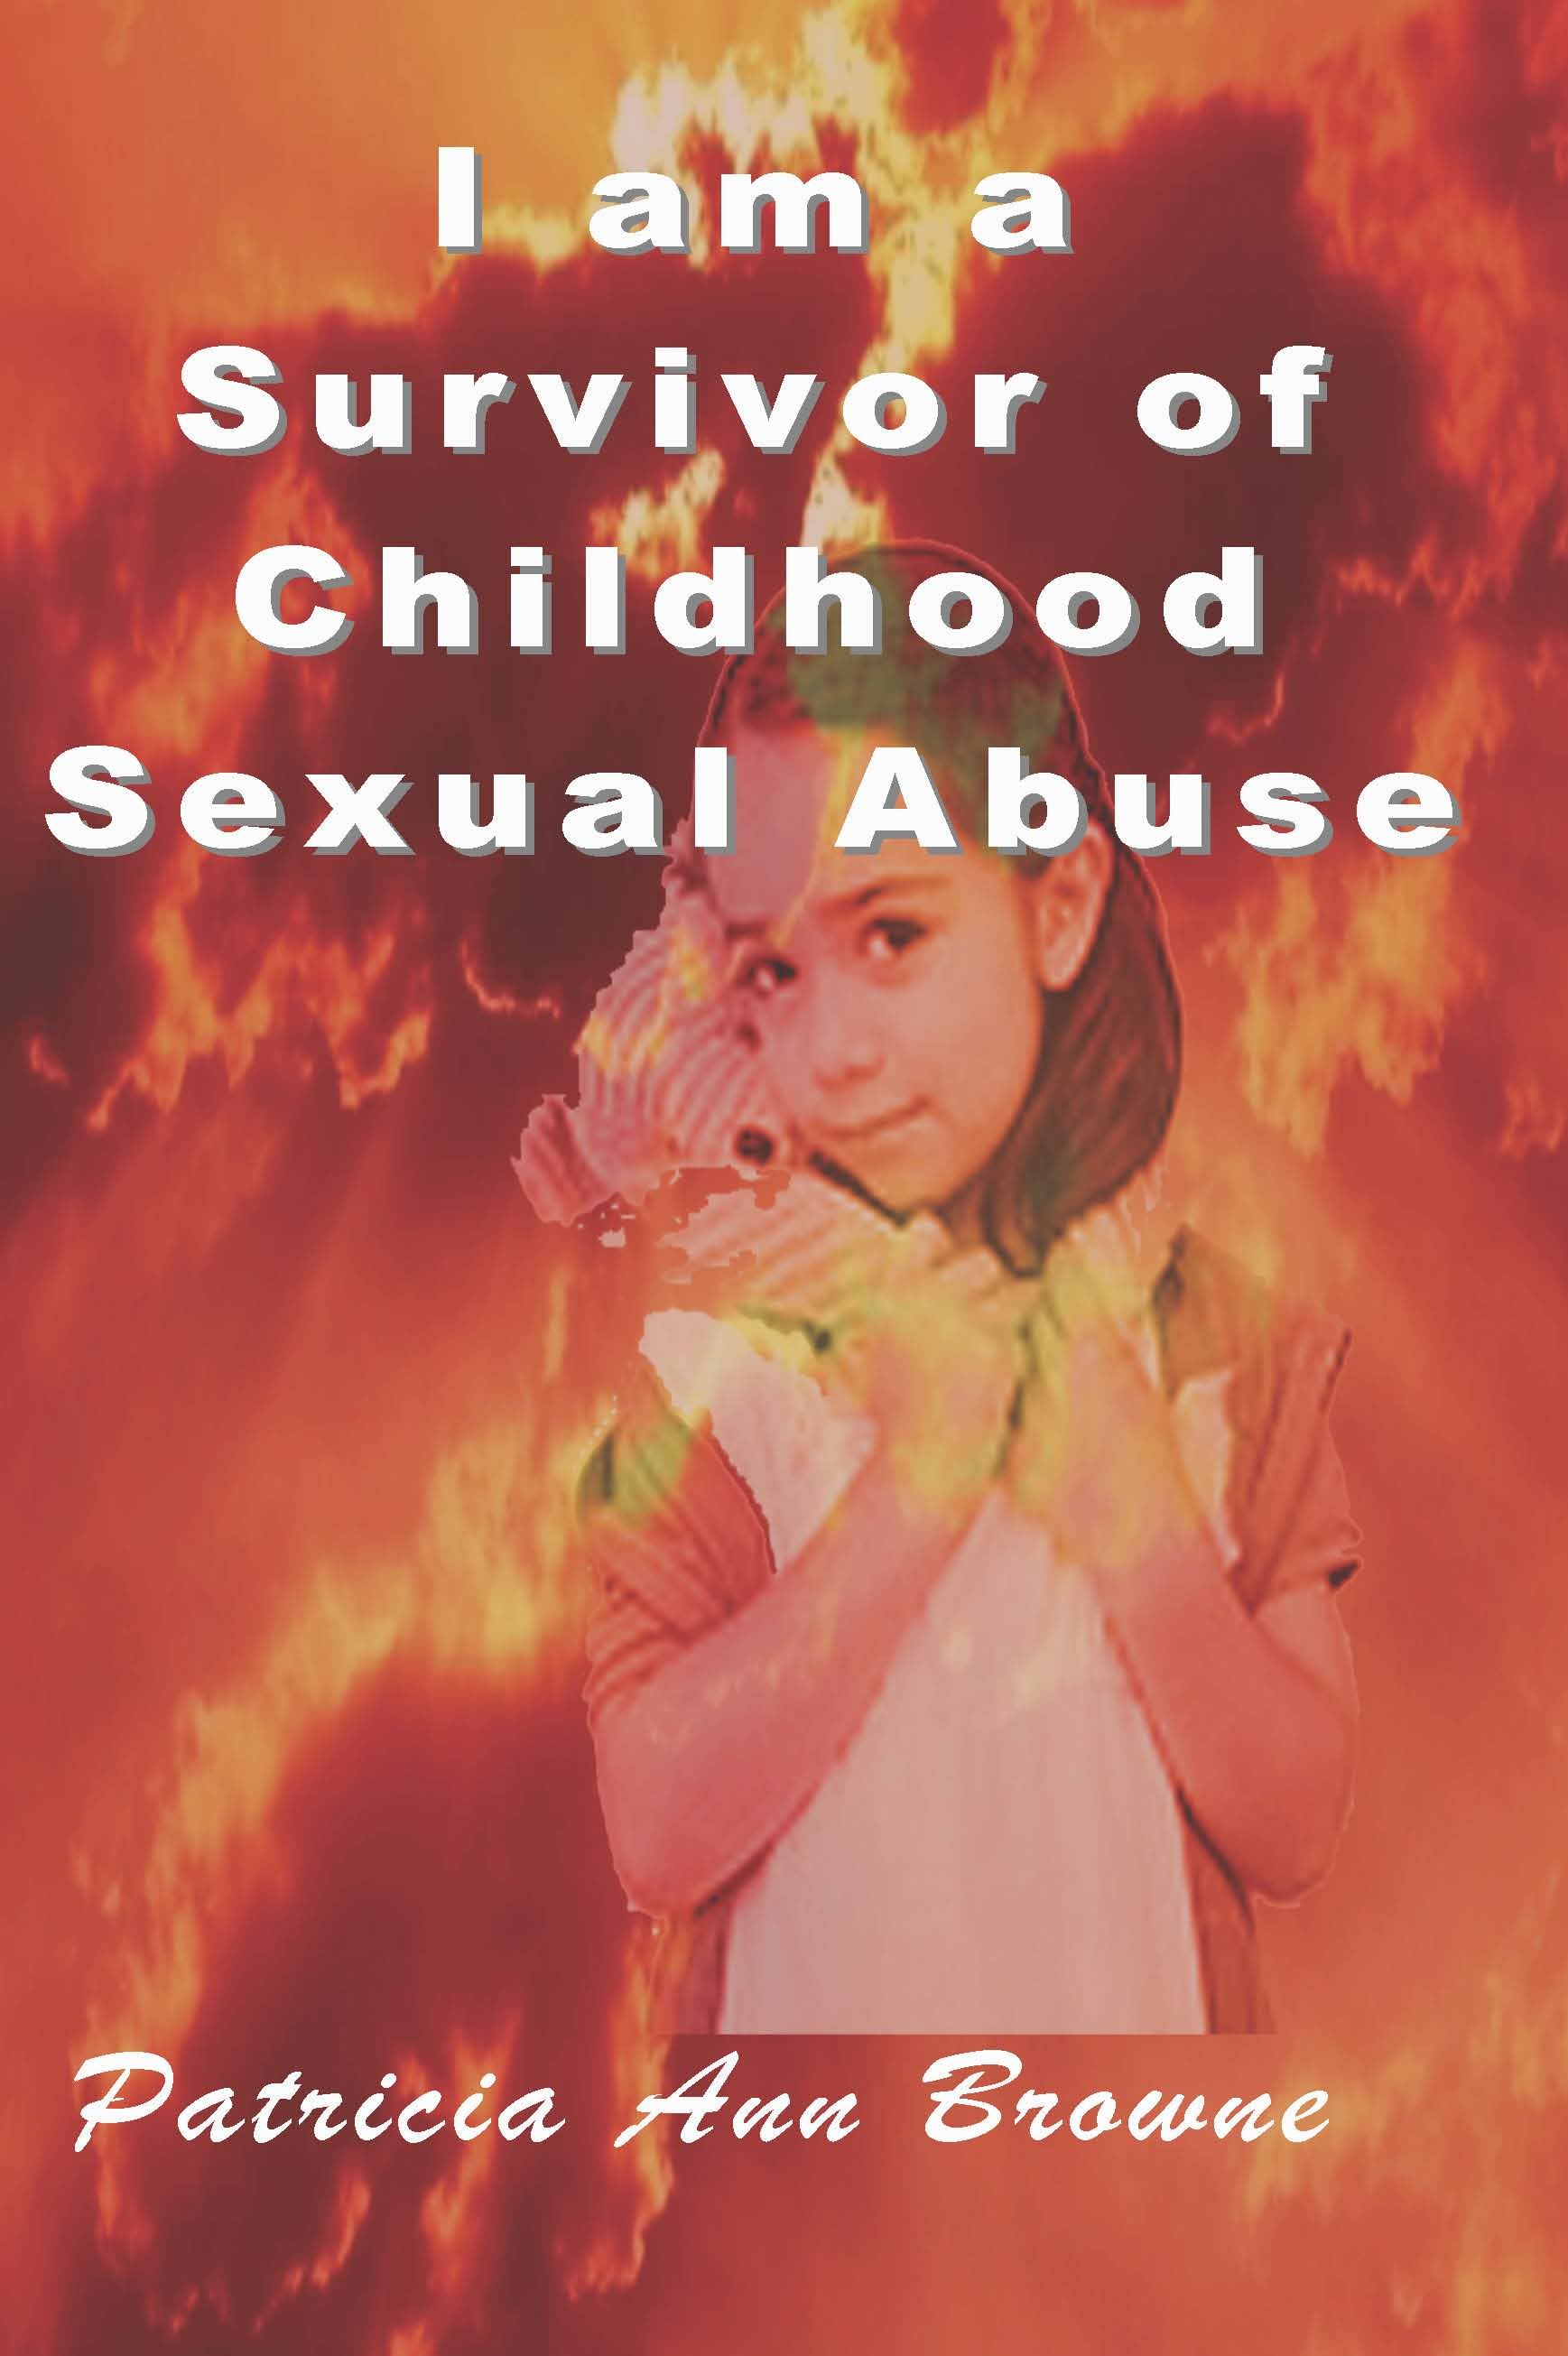 I Am A Survivor of Childhood Sexual Abuse